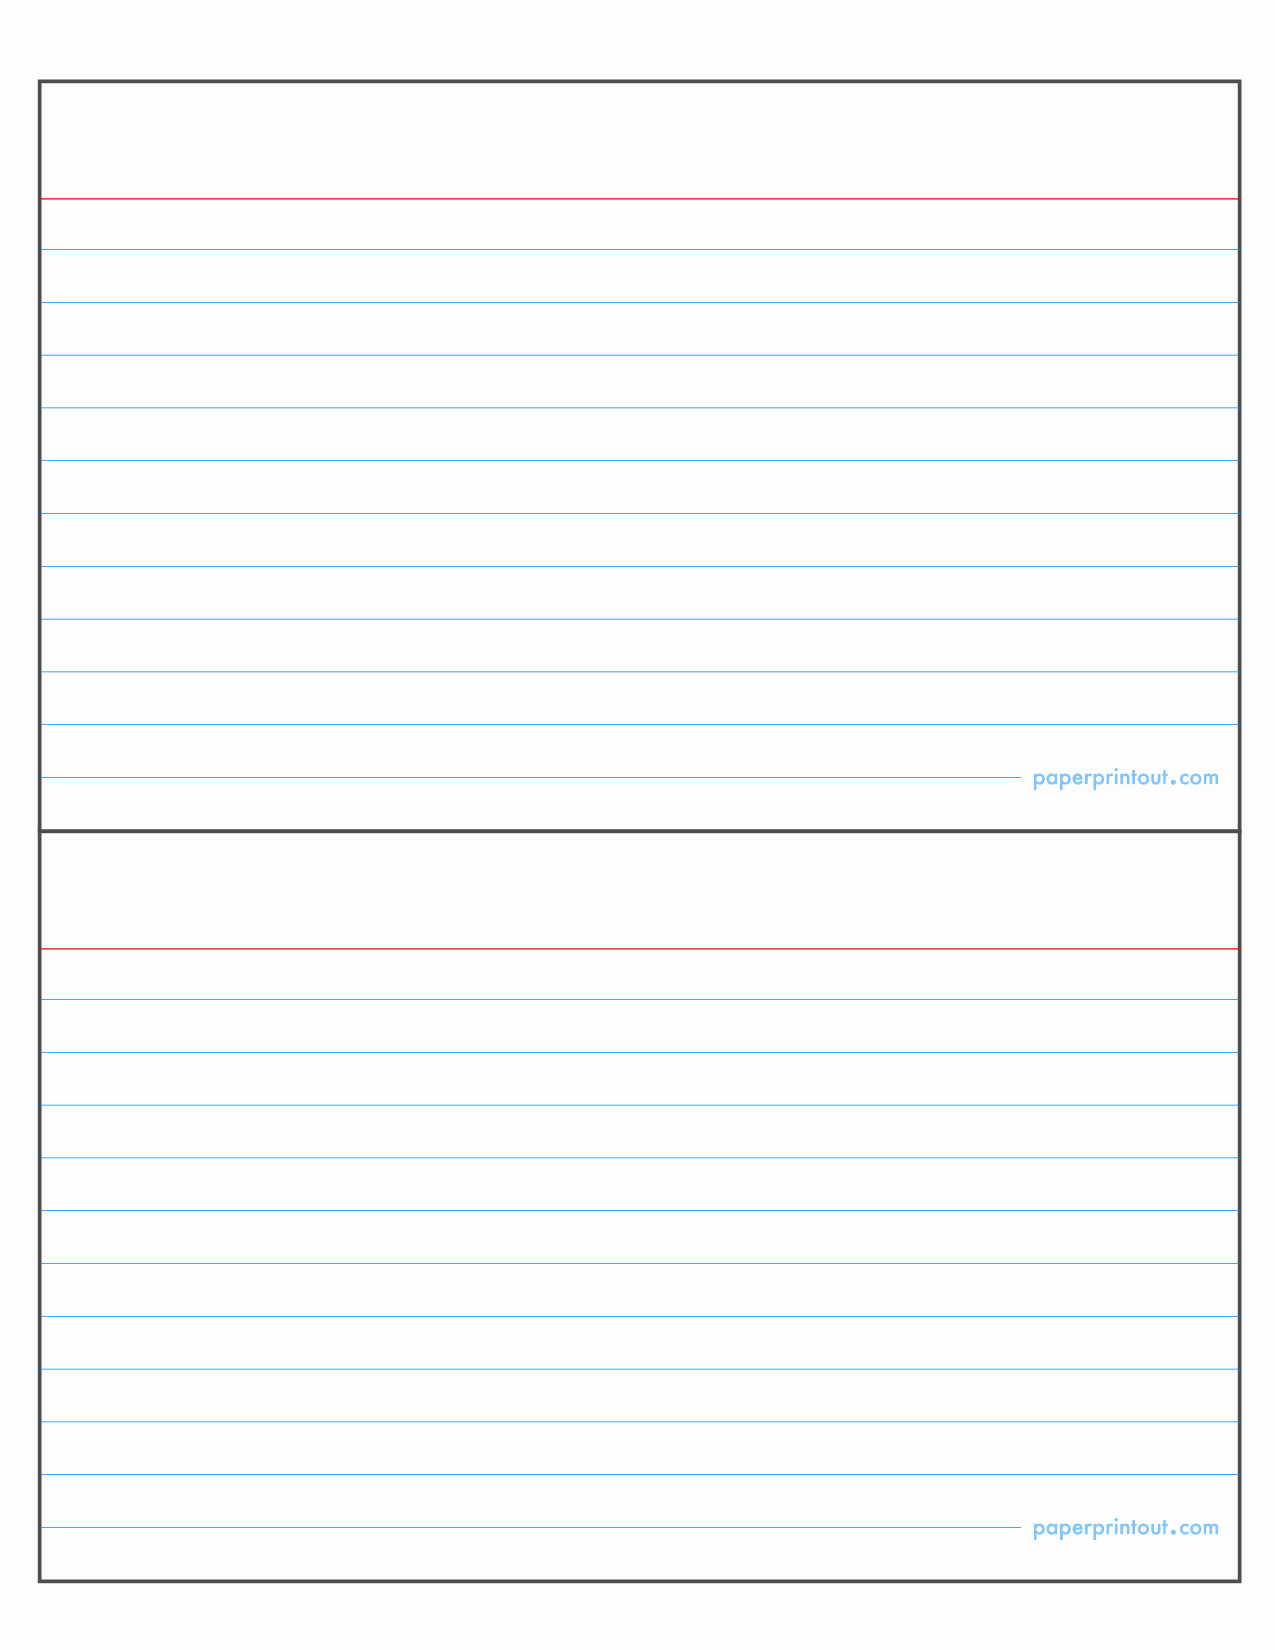 Blank Index Card Template Beautiful Index Card Template